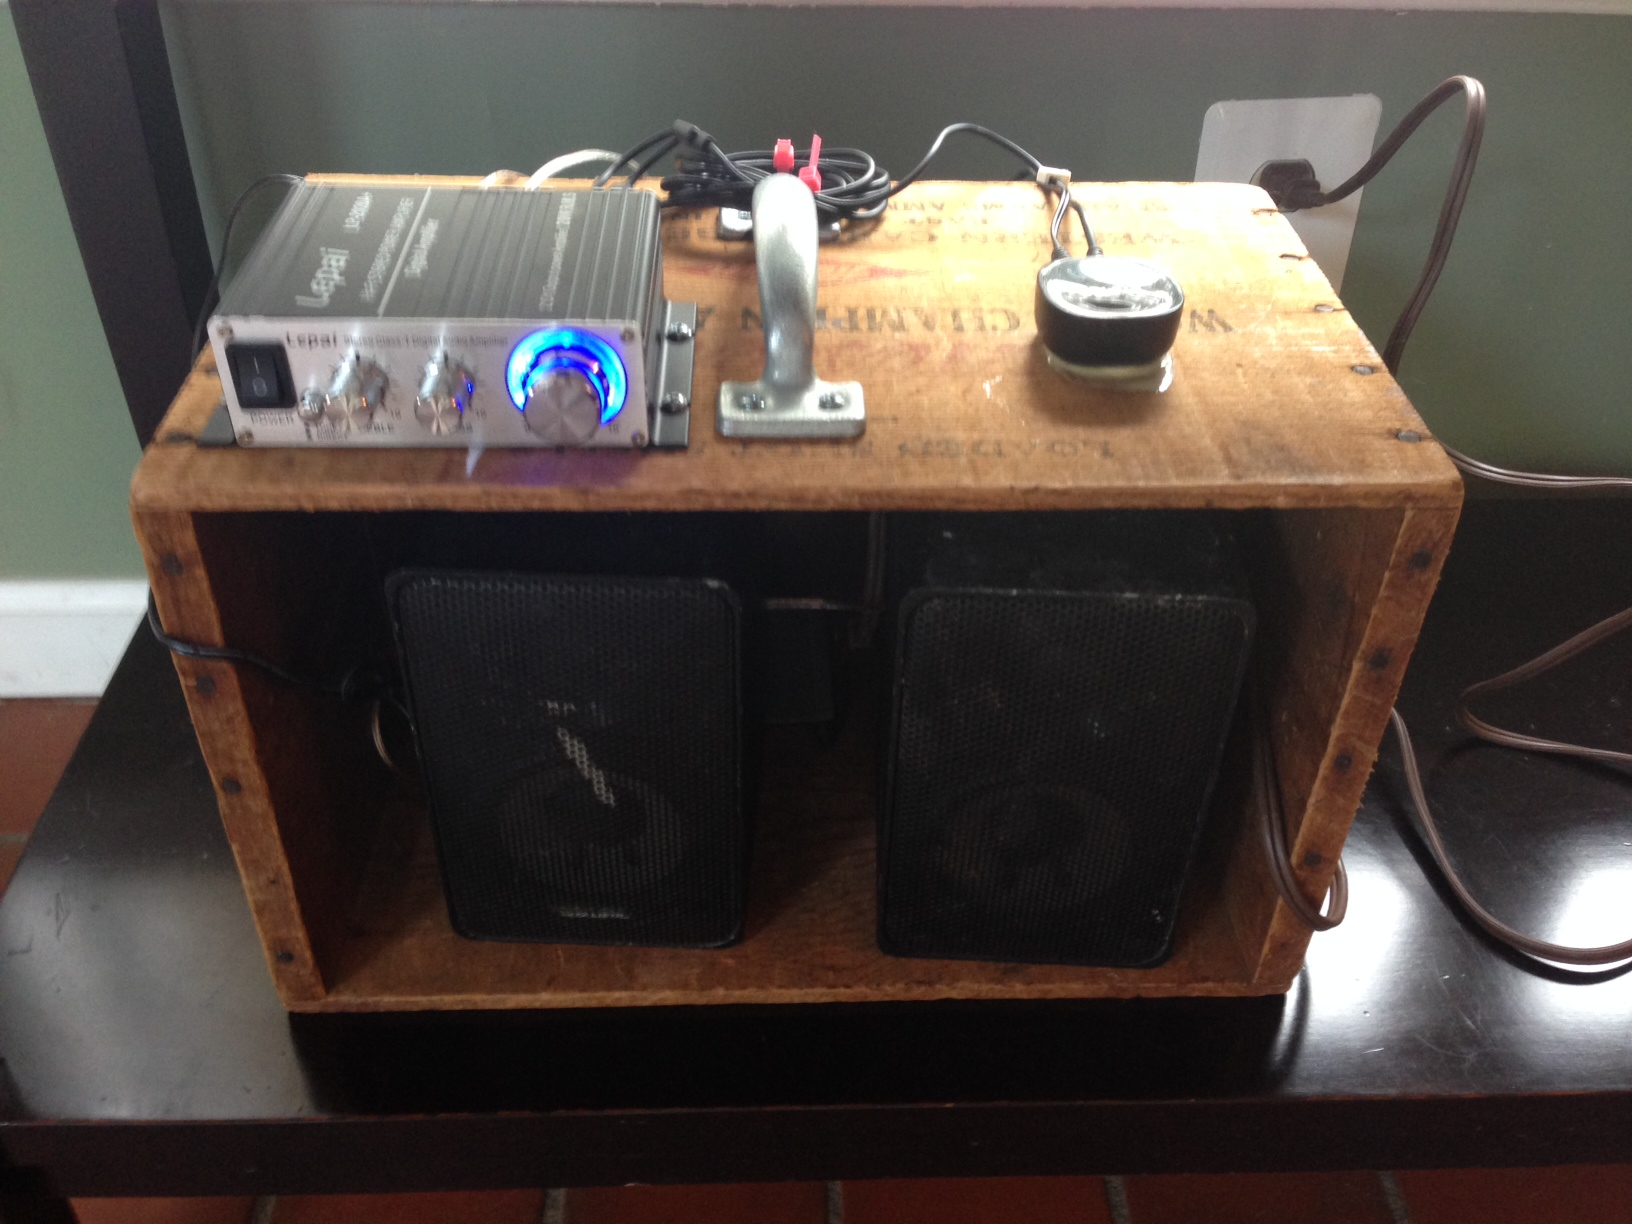 My badass, poor-man's semi-portable bluetooth amplified speaker system